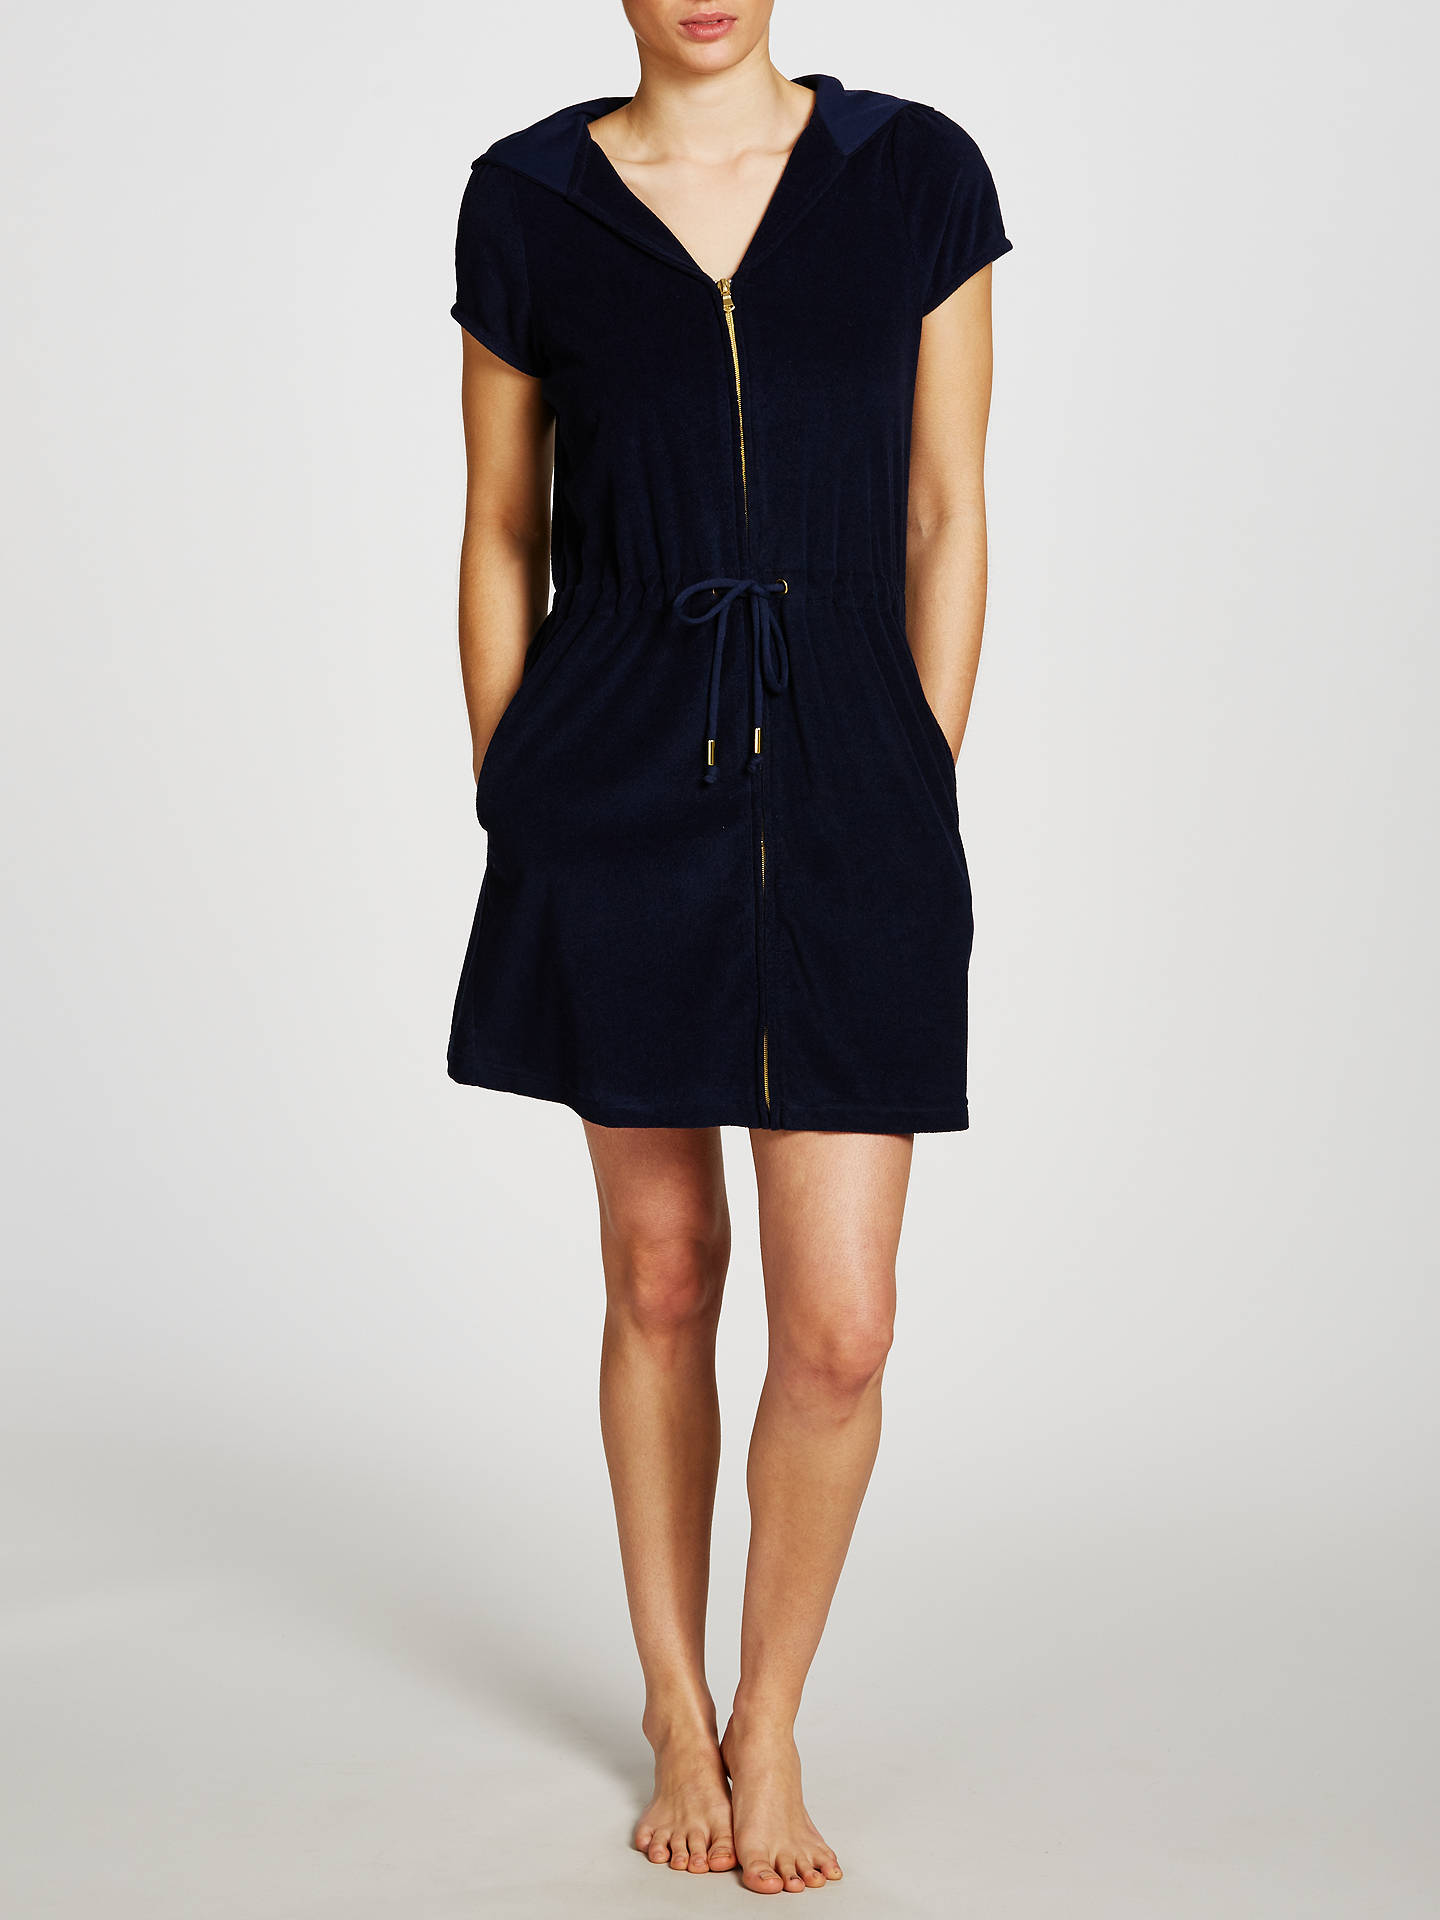 BuyJohn Lewis & Partners Zip Towelling Dress, Navy, S Online at johnlewis.com